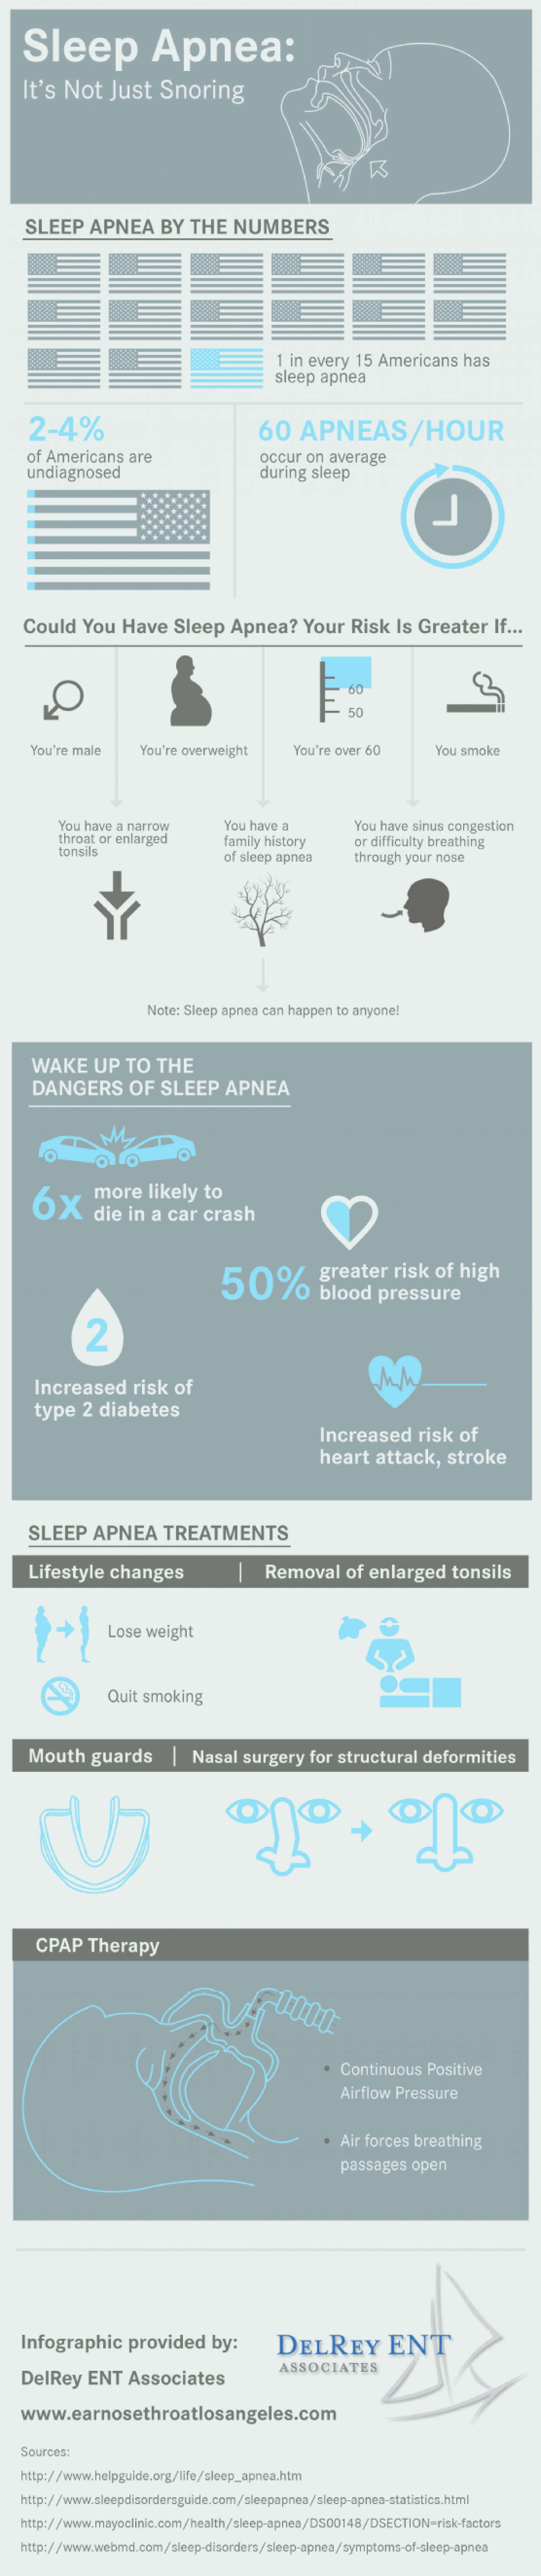 Sleep Apnea: It's Not Just Snoring Infographic